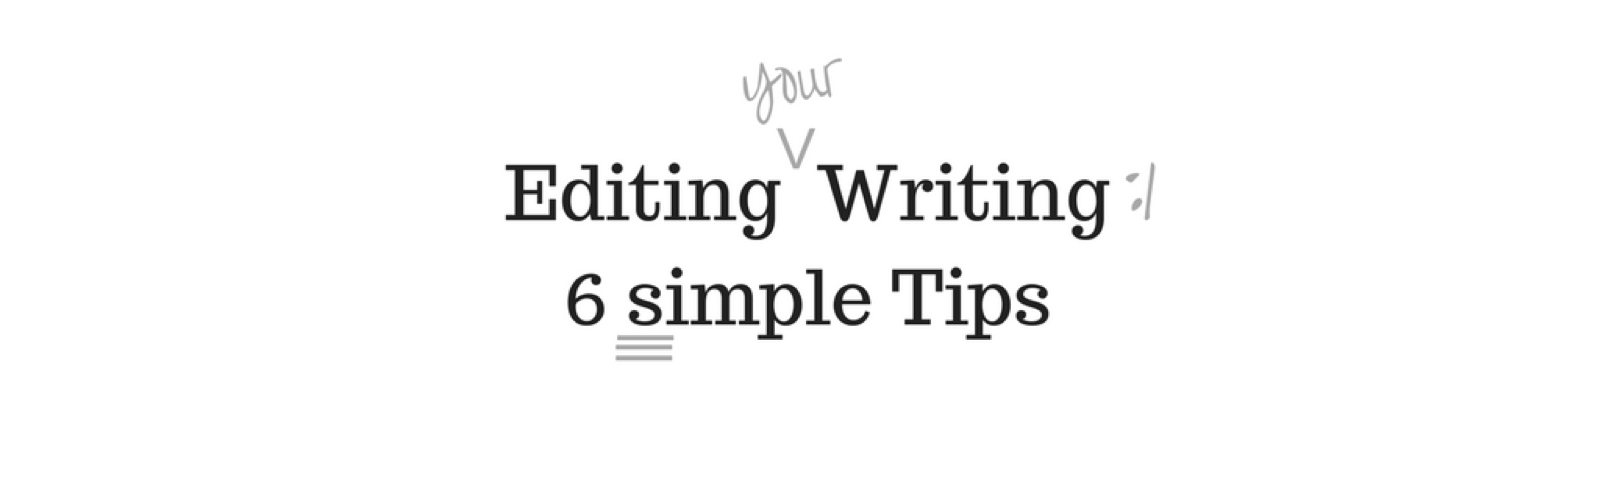 Editing your Writing 6 simple tips and tricks